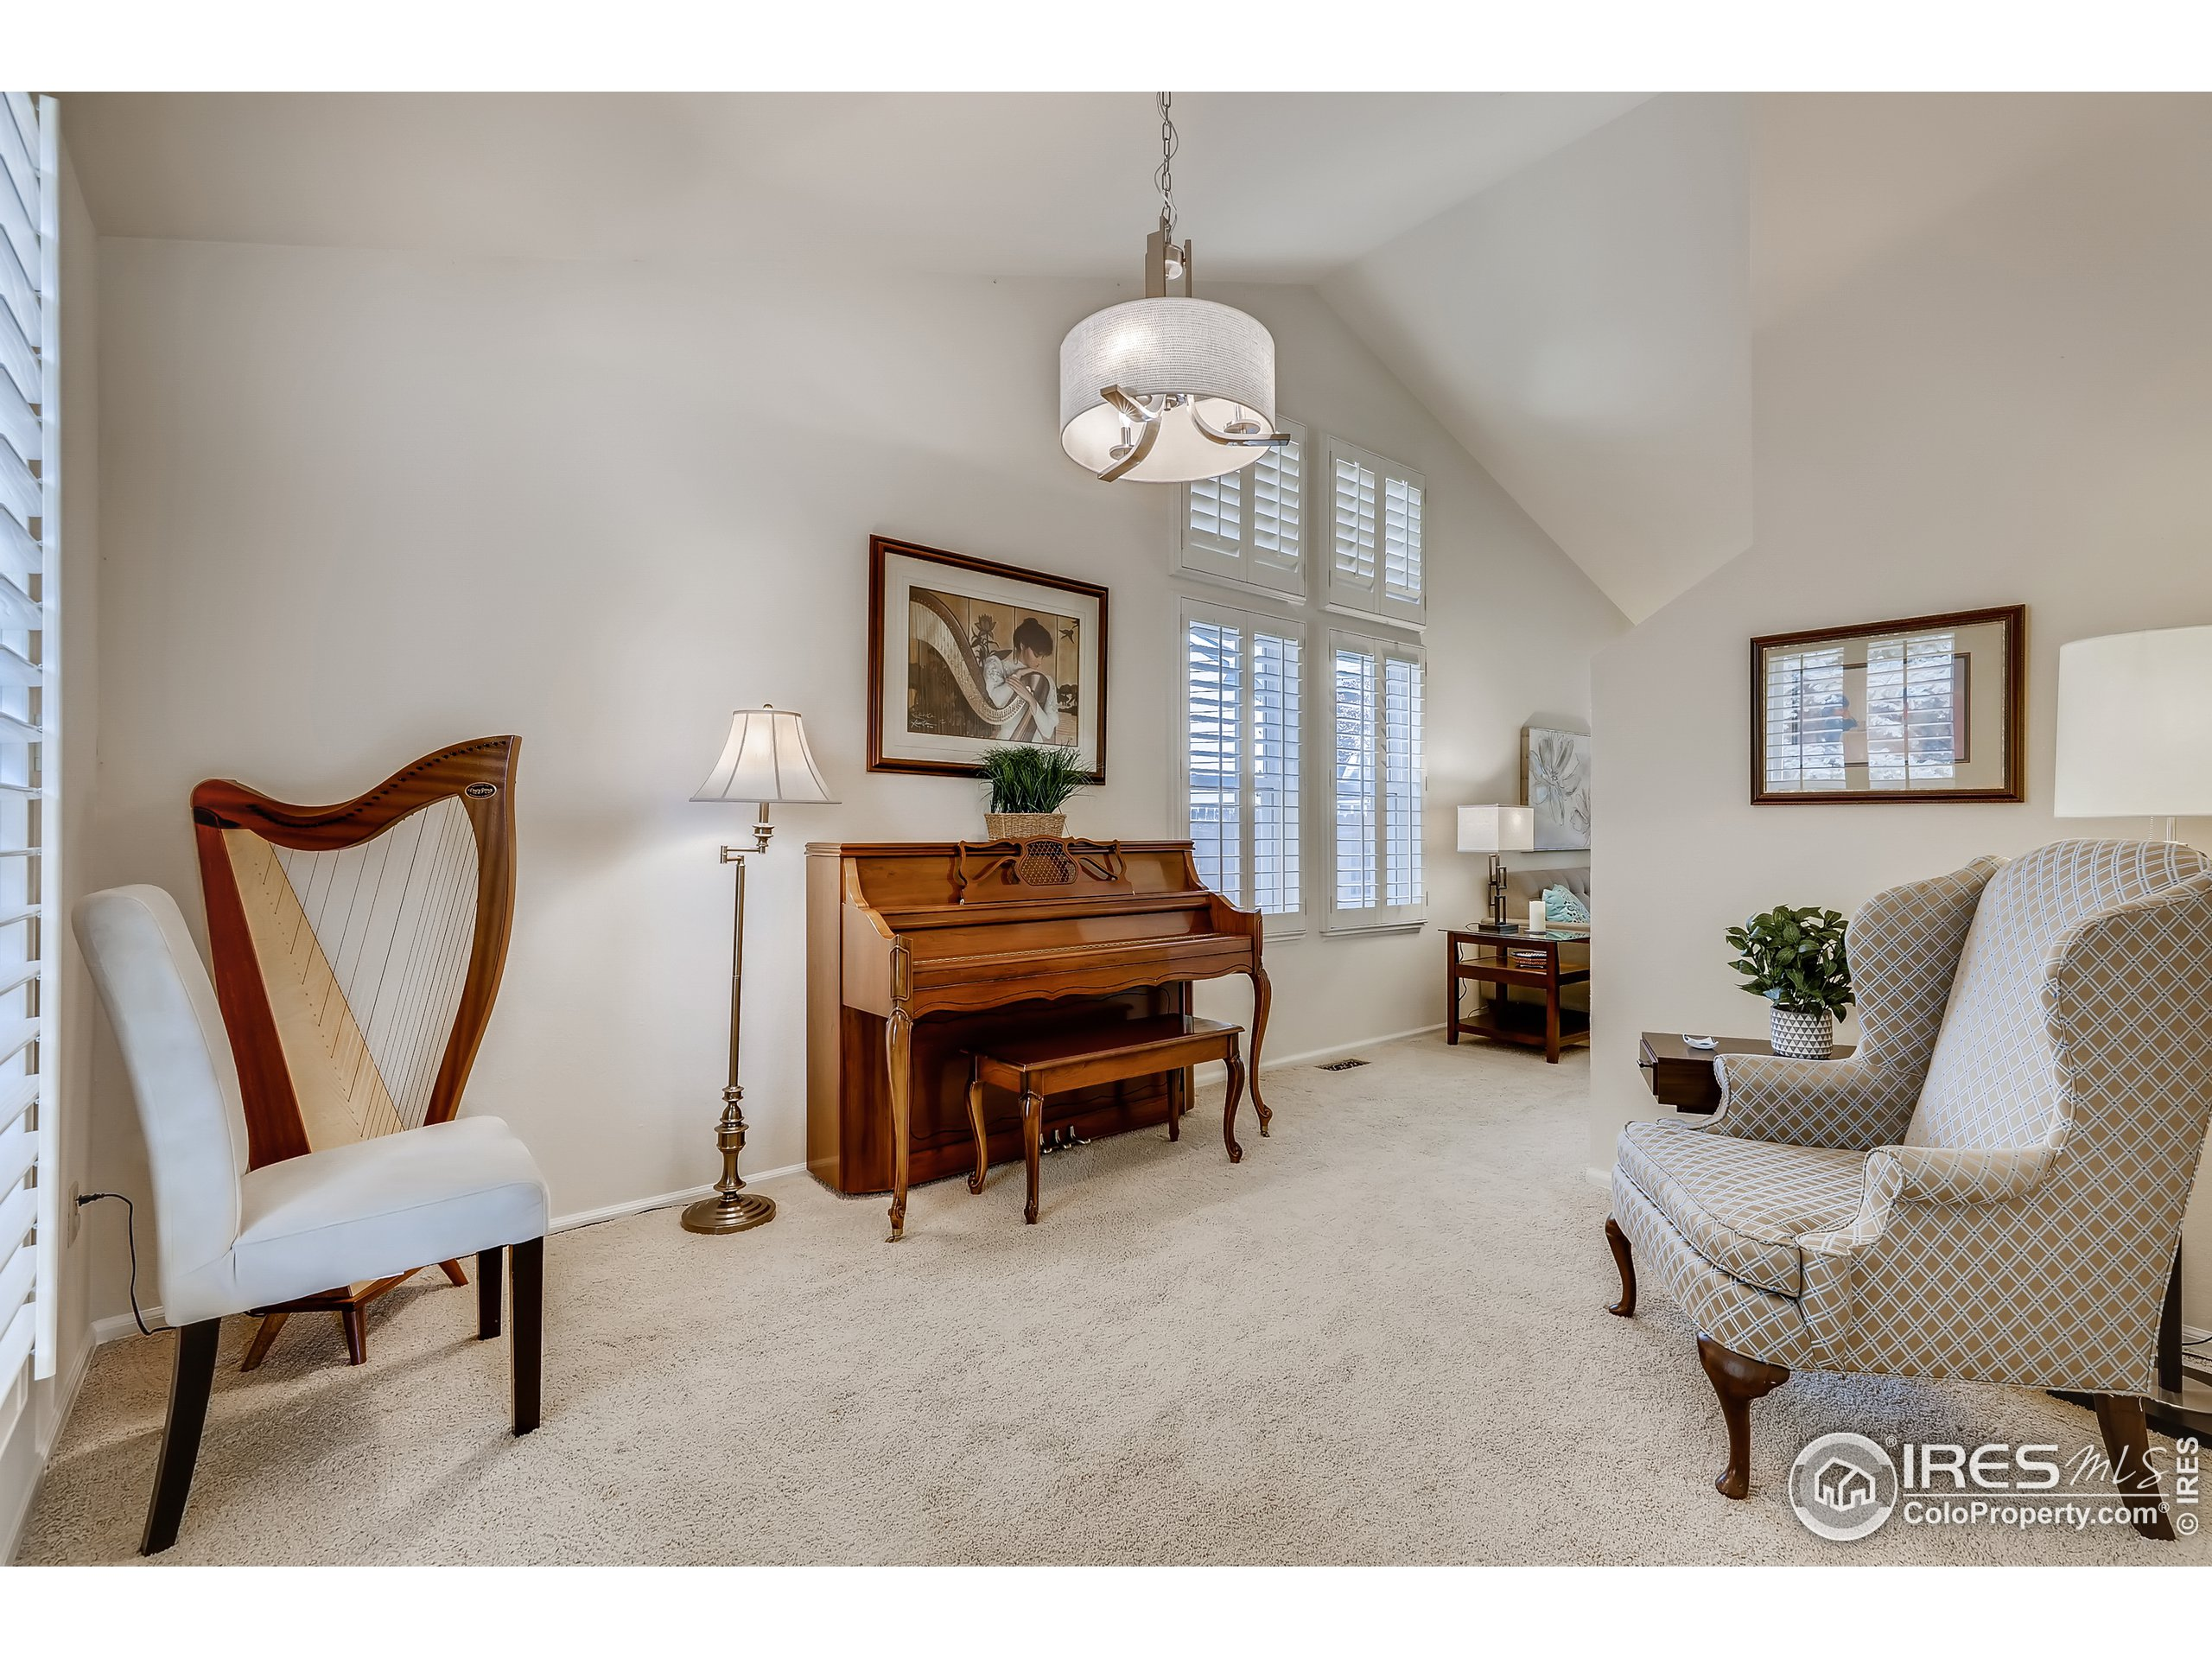 Music room or could be used as a formal dining room.